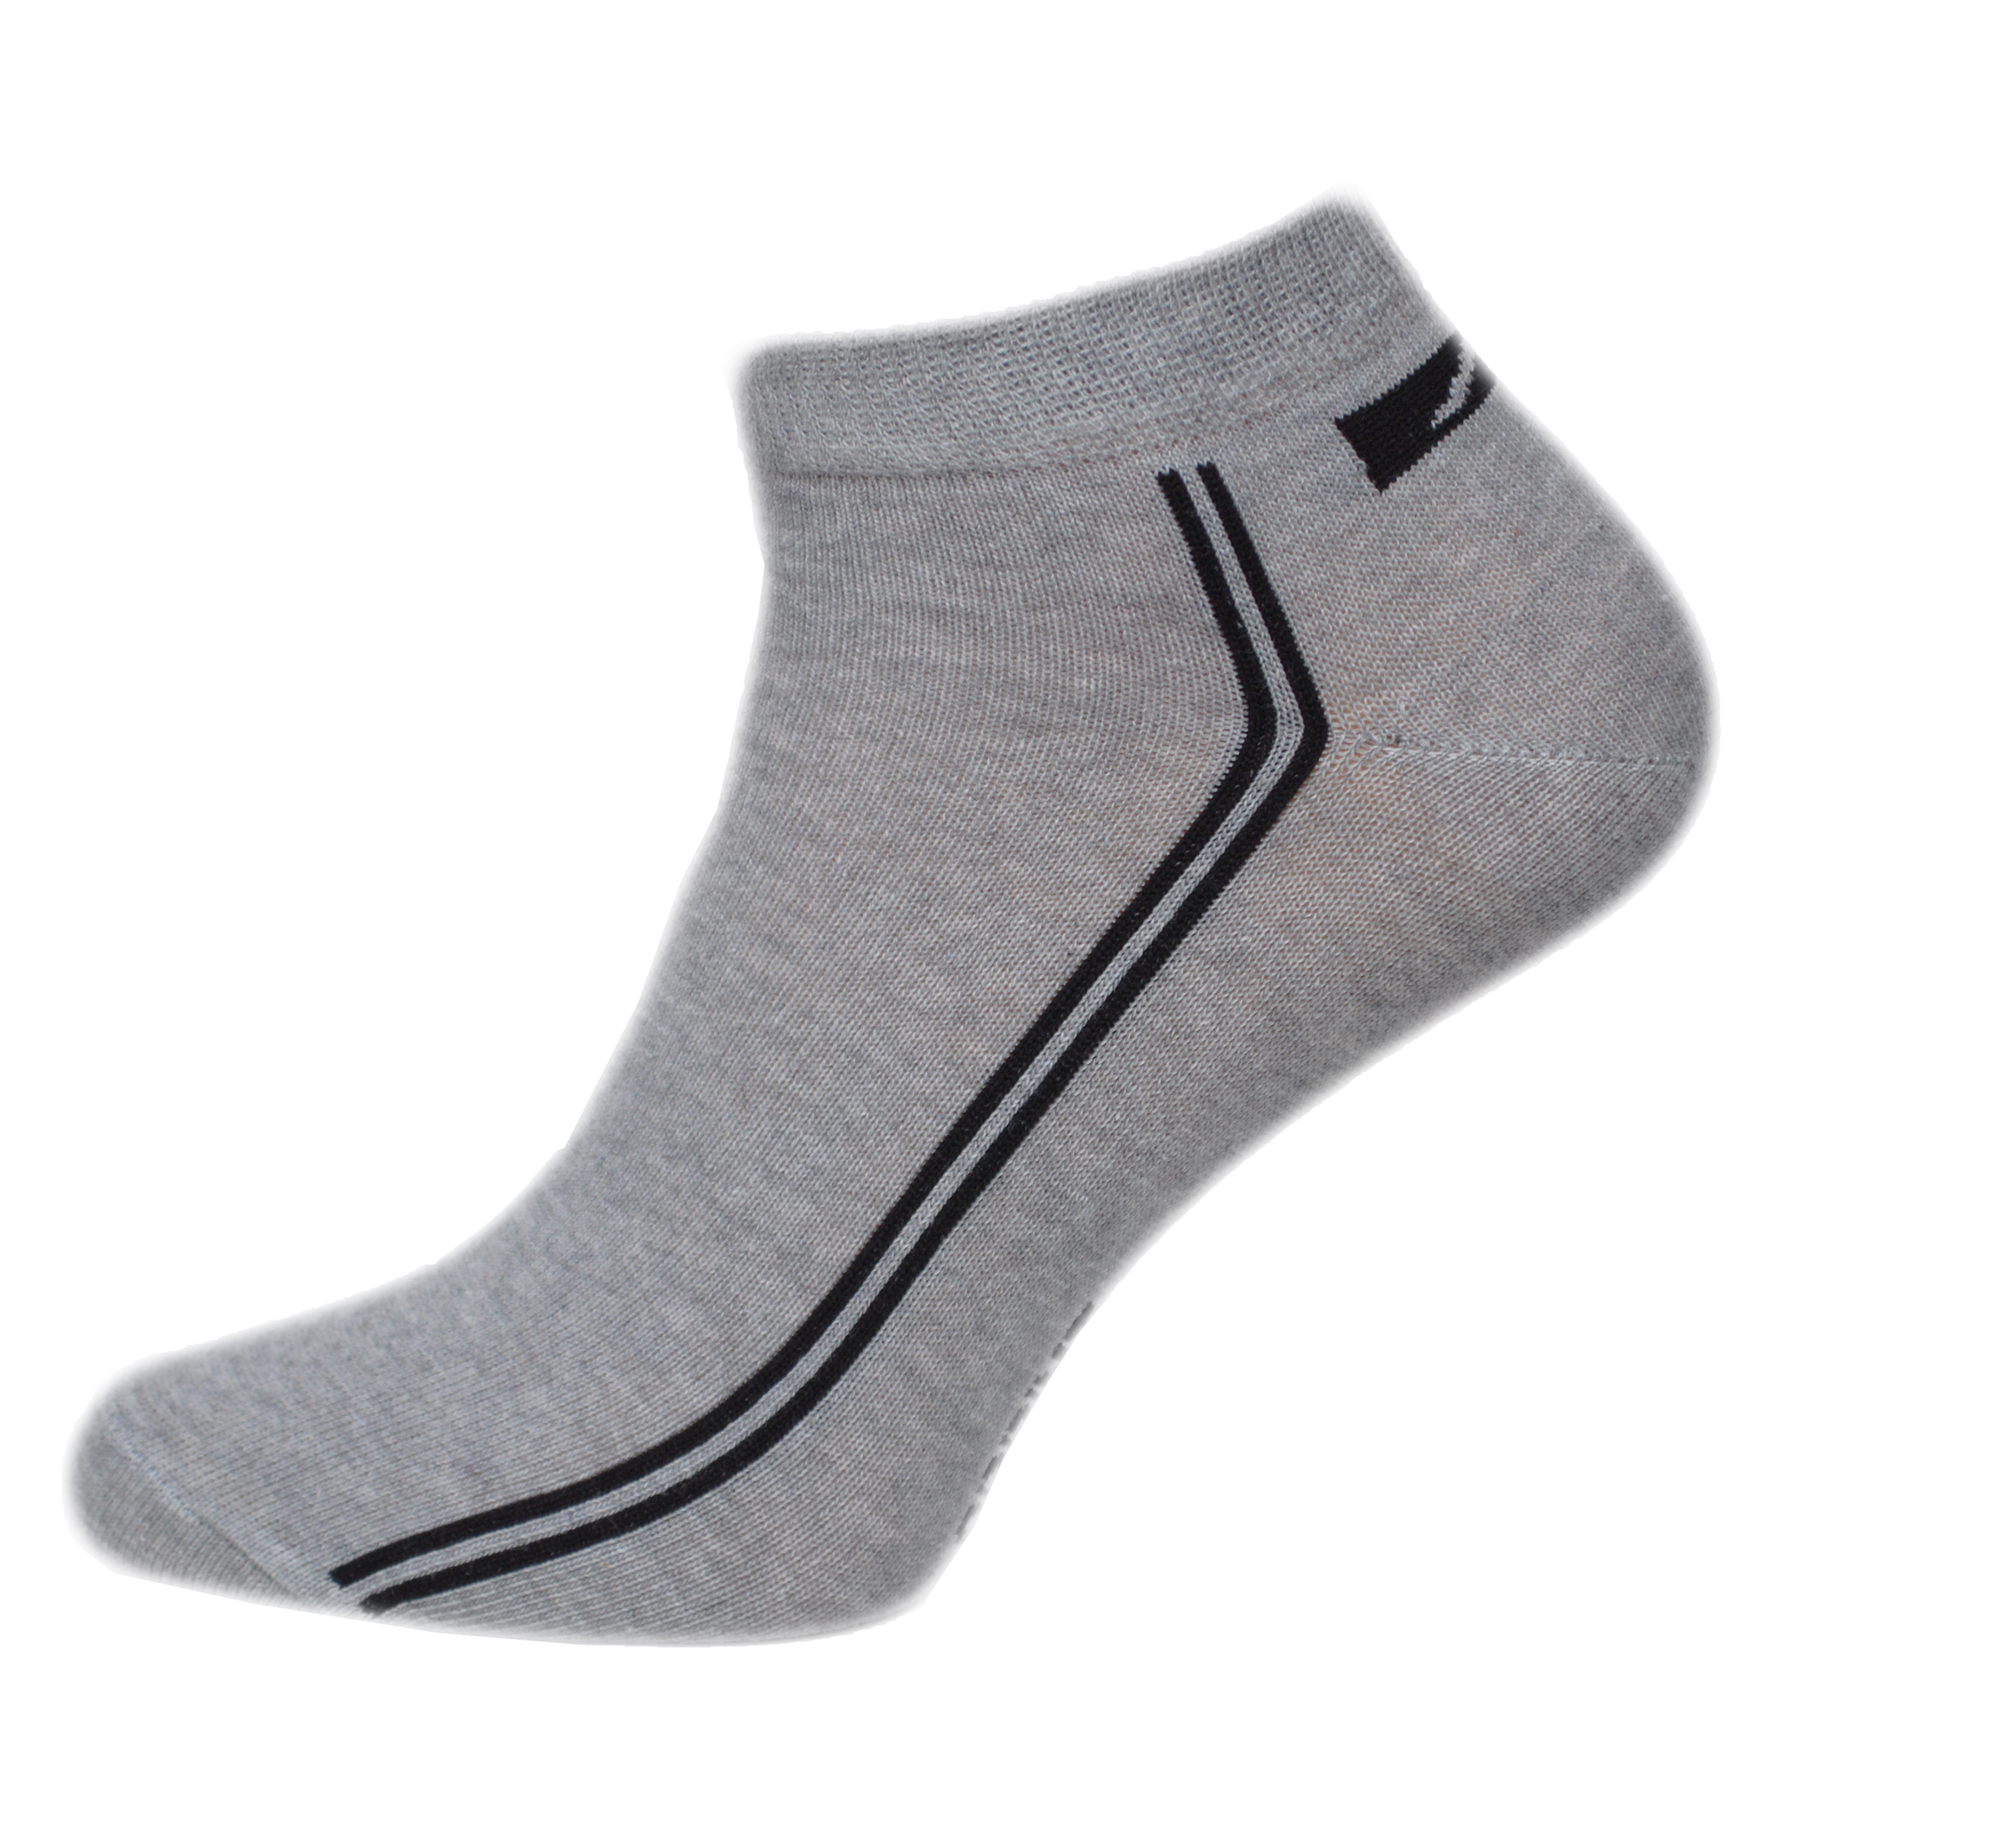 8 paar herren sneaker sprint socken mit komfortbund sommersocken sneakers ebay. Black Bedroom Furniture Sets. Home Design Ideas